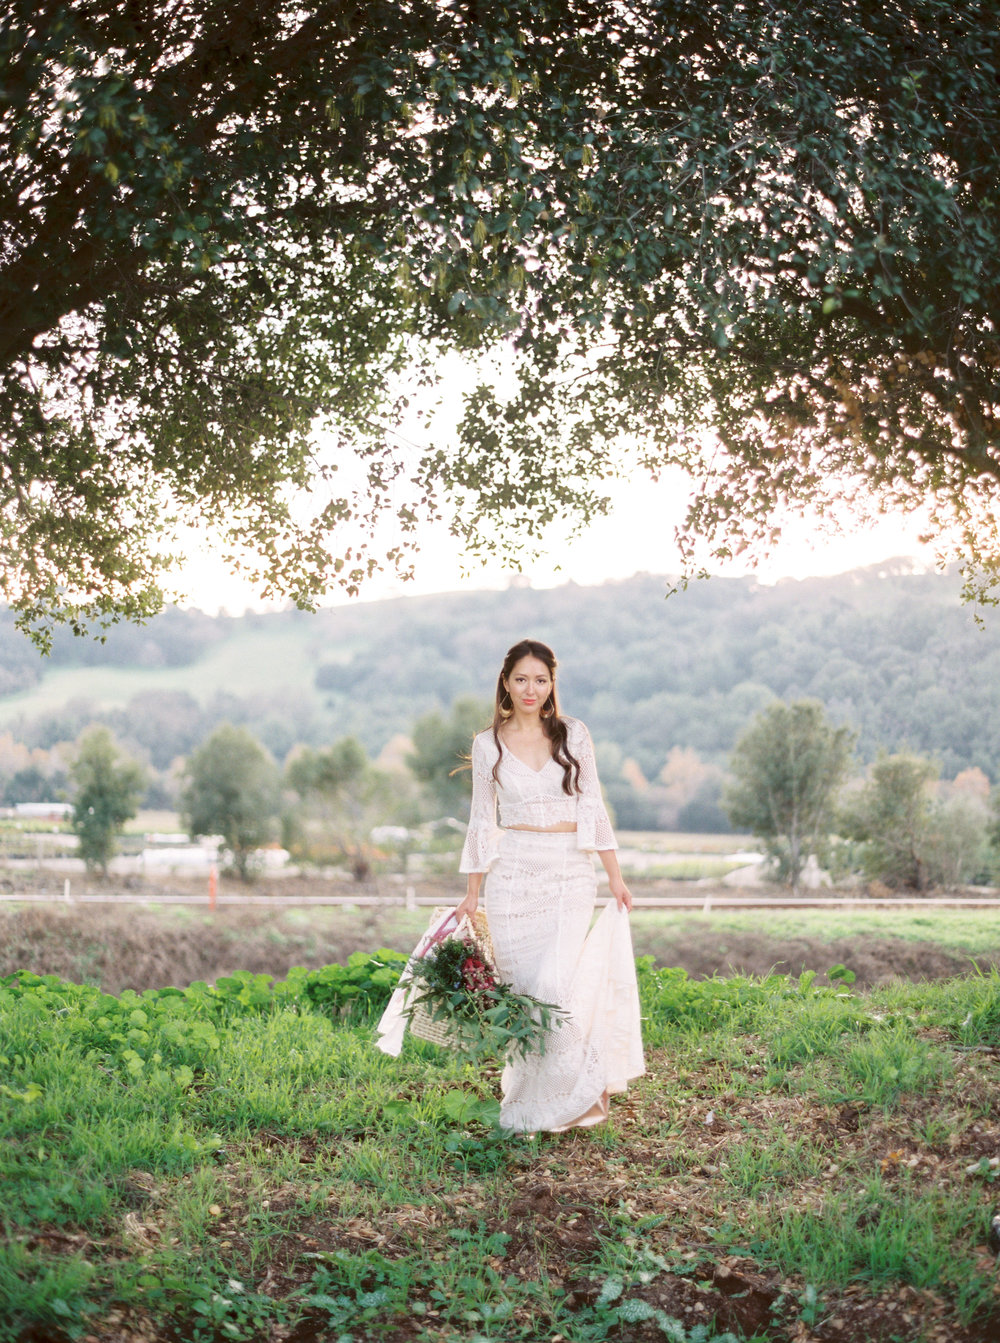 boho-inspired-wedding-at-casa-bella-in-sunol-california-76.jpg